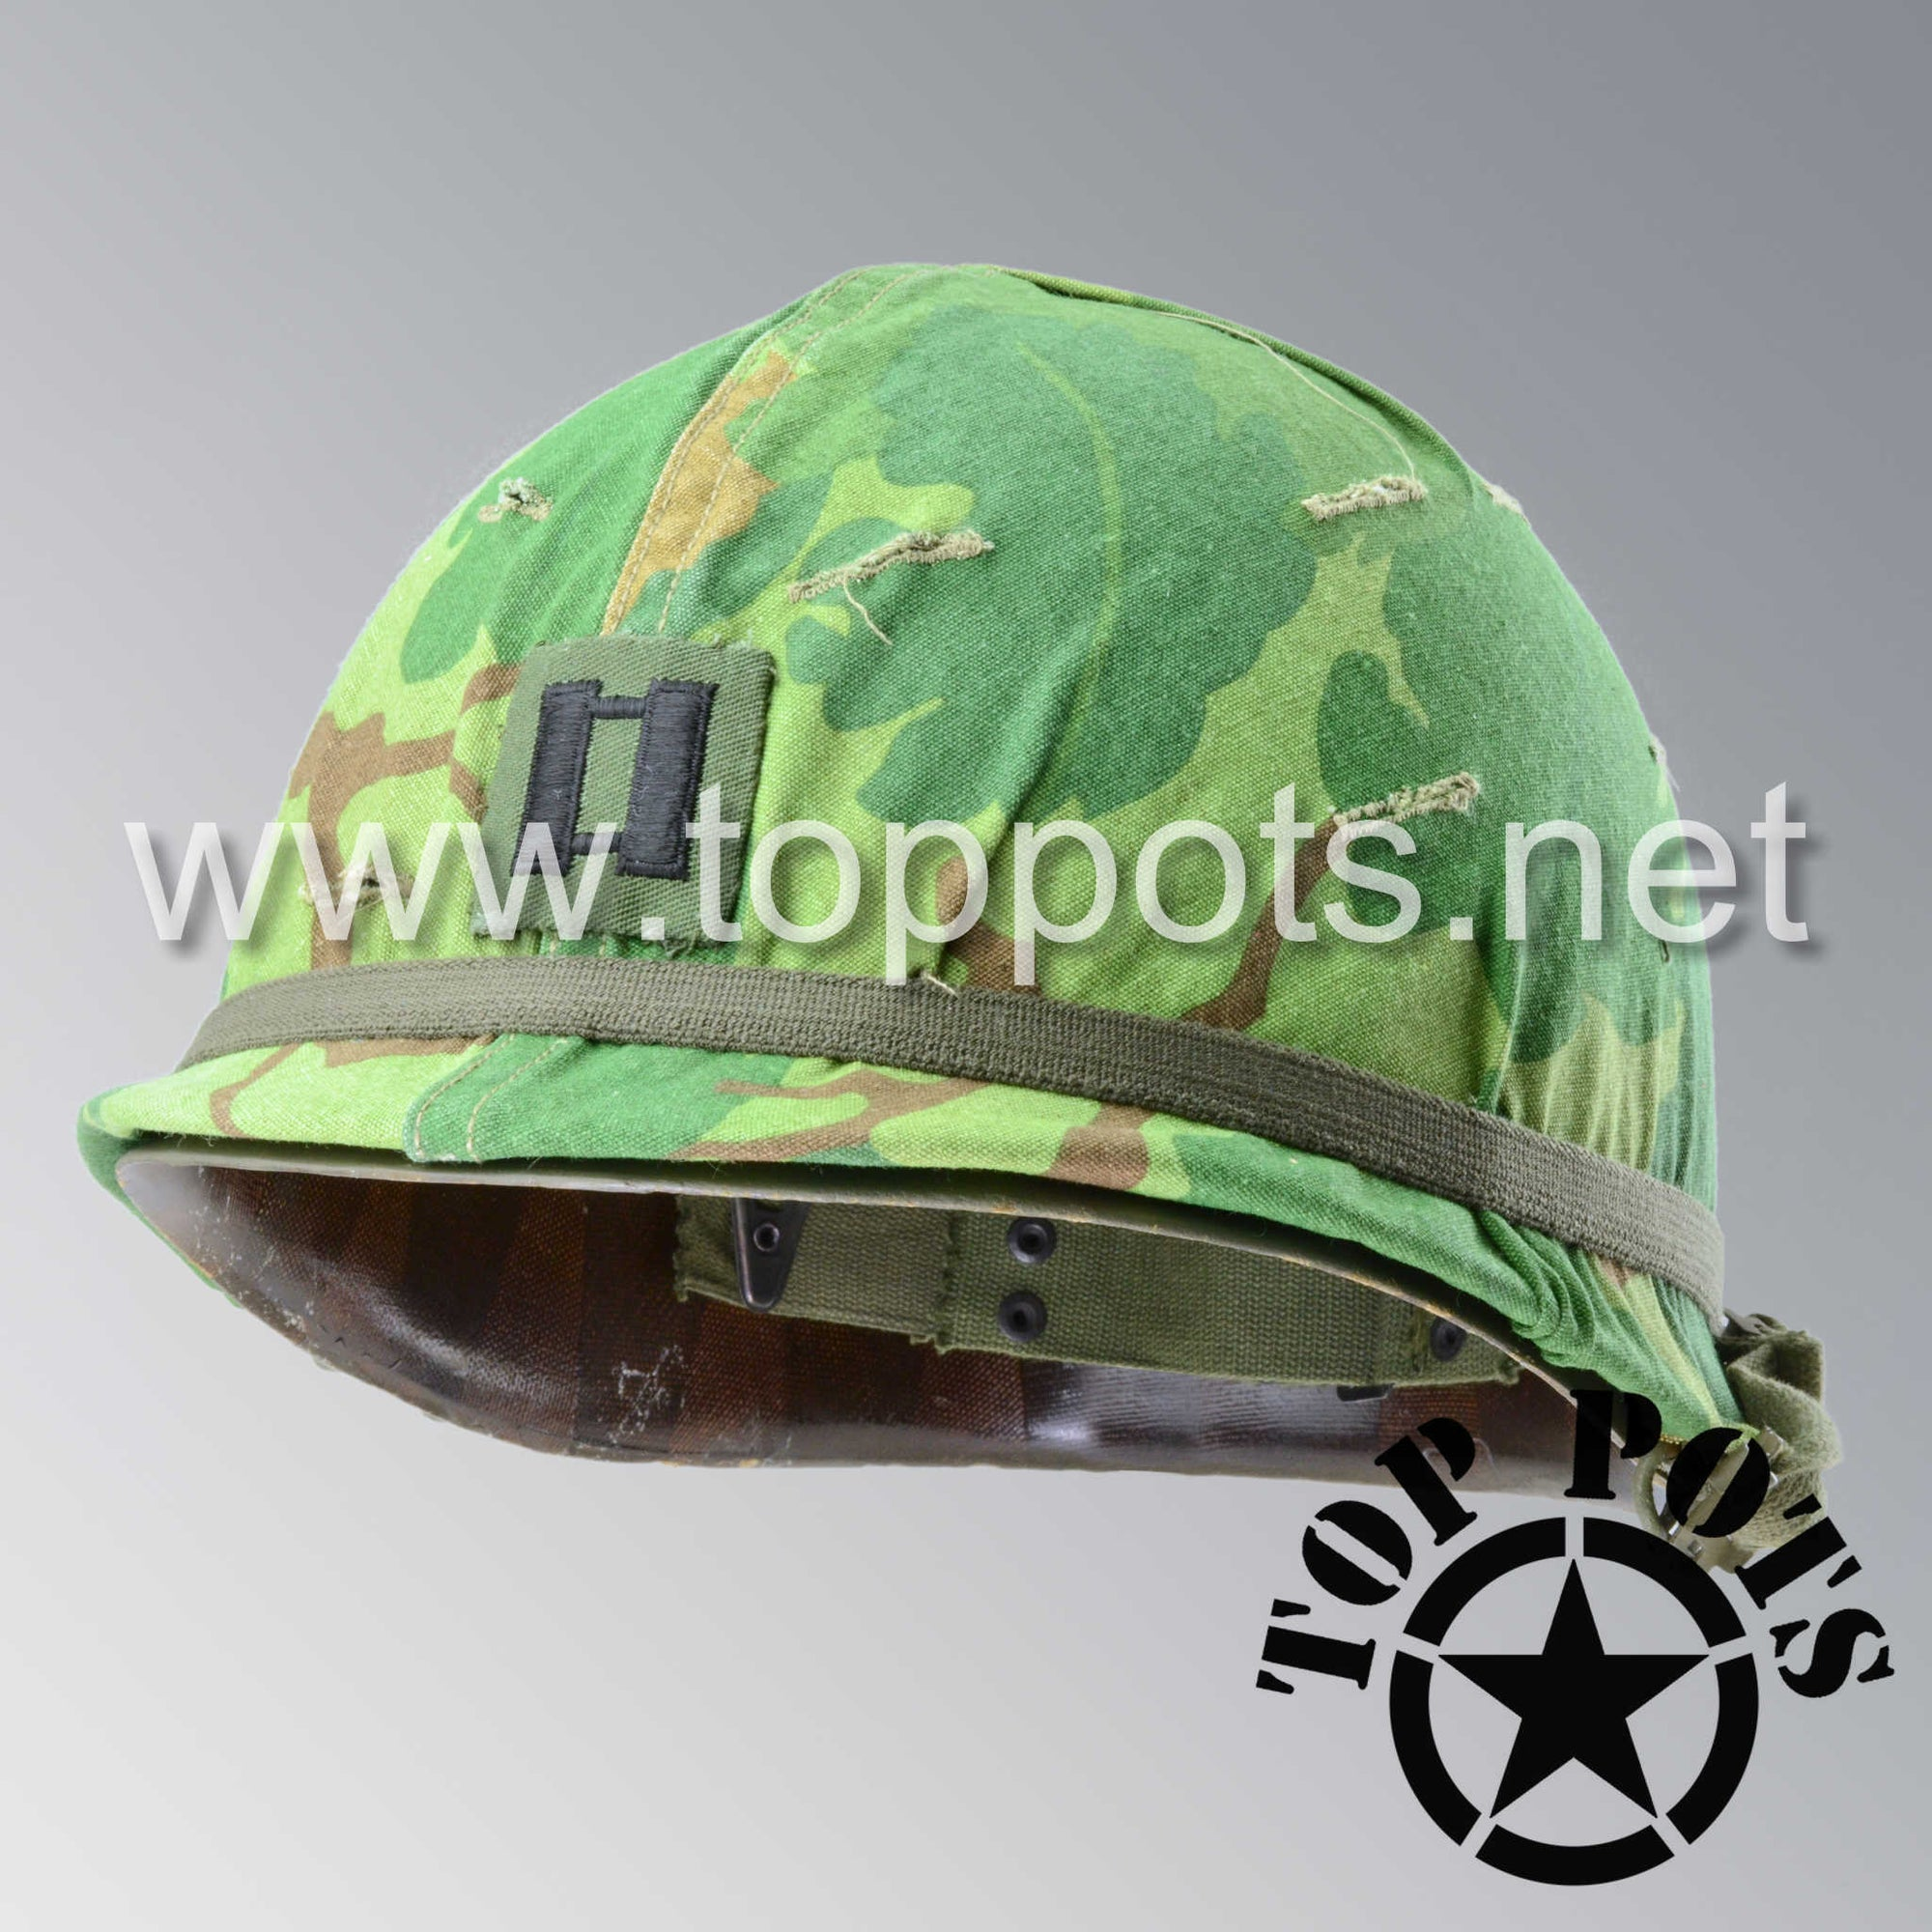 Image 1 of Vietnam War US Army Original M1 Infantry Helmet Swivel Bale Shell and P55 Liner with Captain Willard Mitchell Camouflage Cover